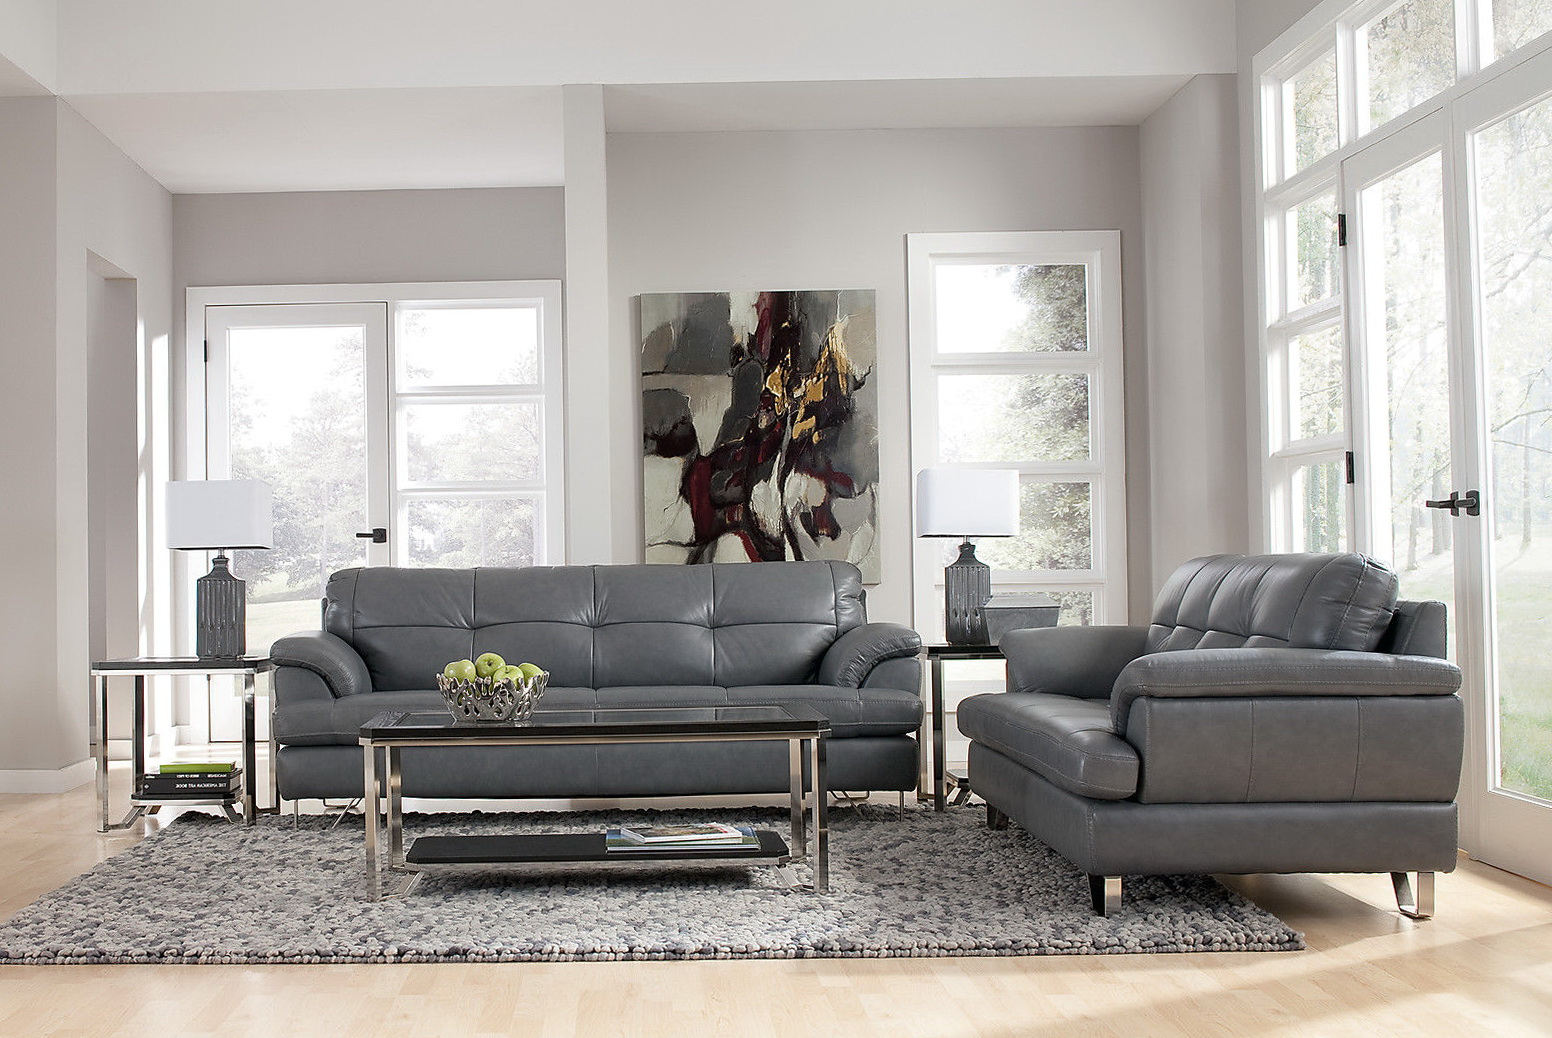 Grey Leather Living Room Set